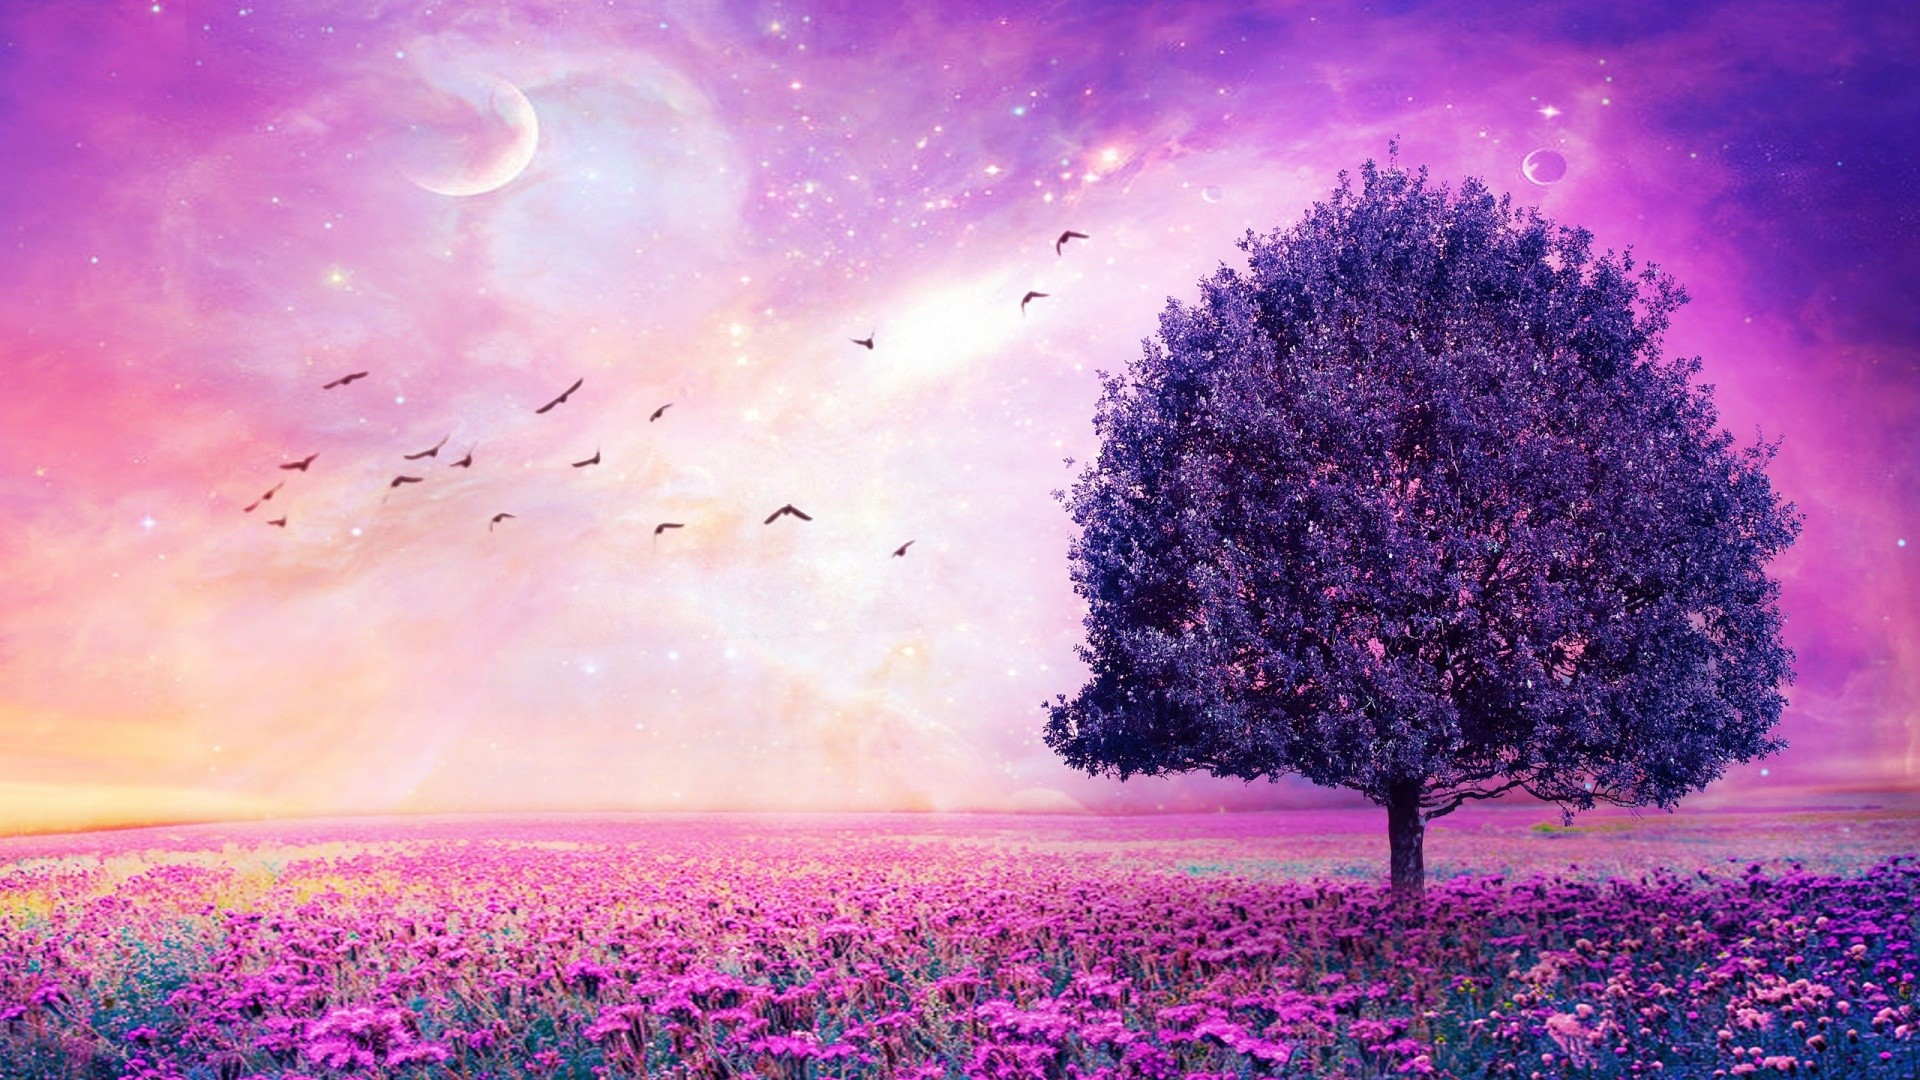 1920x1080 Purple-Flower-Wallpaper-Free-Download-For-Desktop